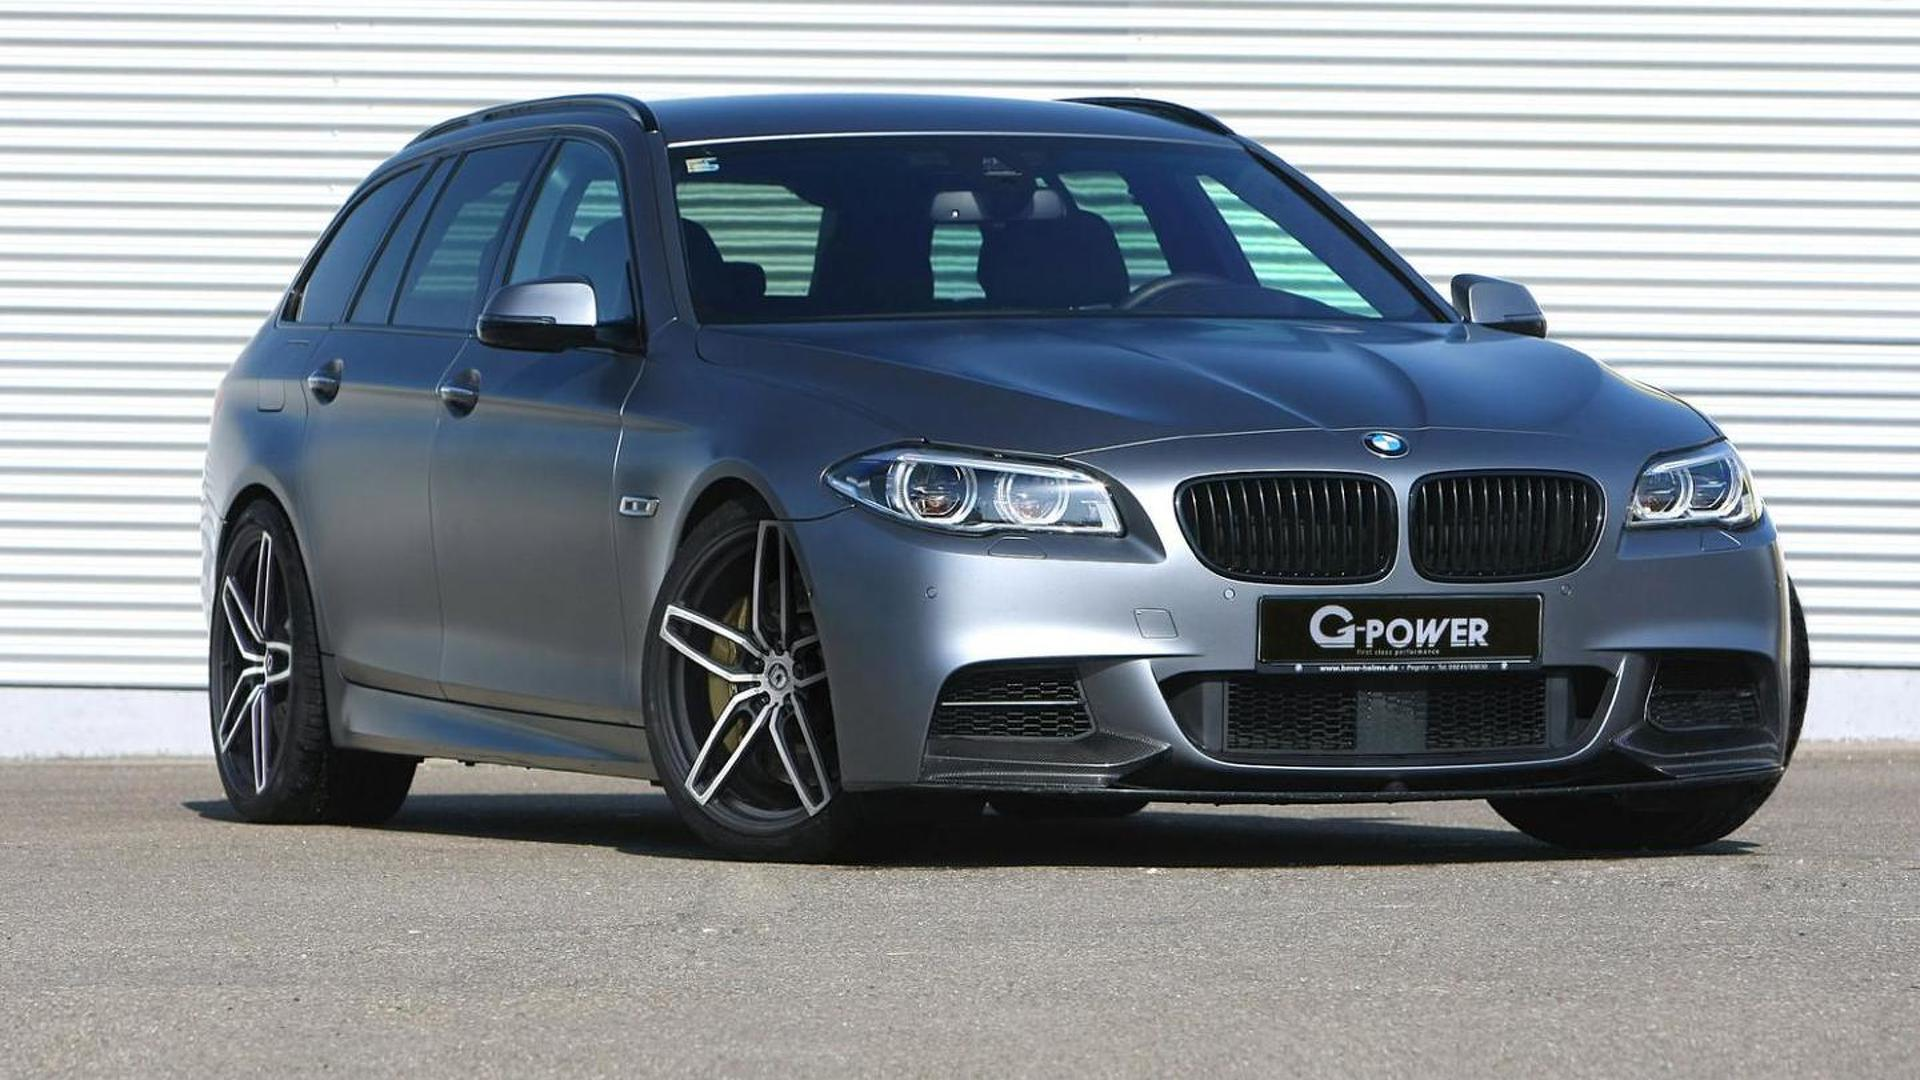 G-Power tuned BMW M550d sets a record for being the fastest diesel-powered BMW wagon